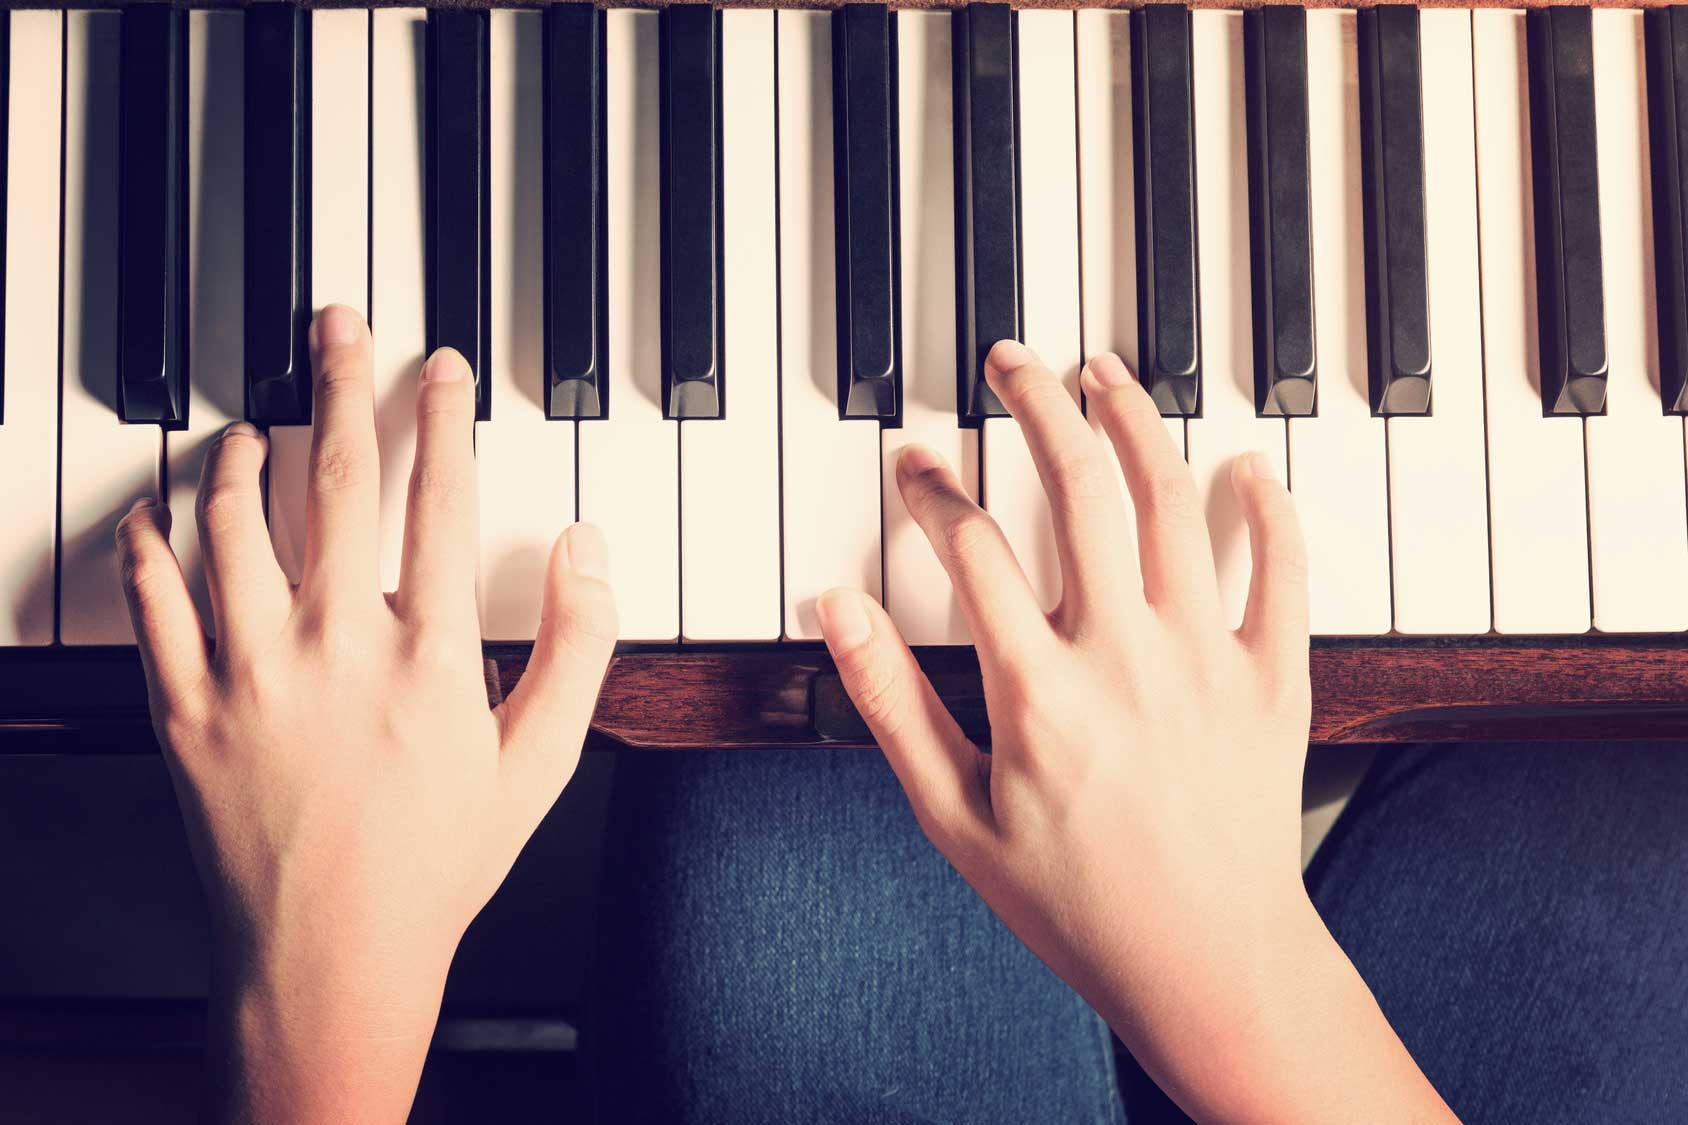 The 4 most important piano chords to learn the one smart piano the 4 most important piano chords to learn hexwebz Gallery